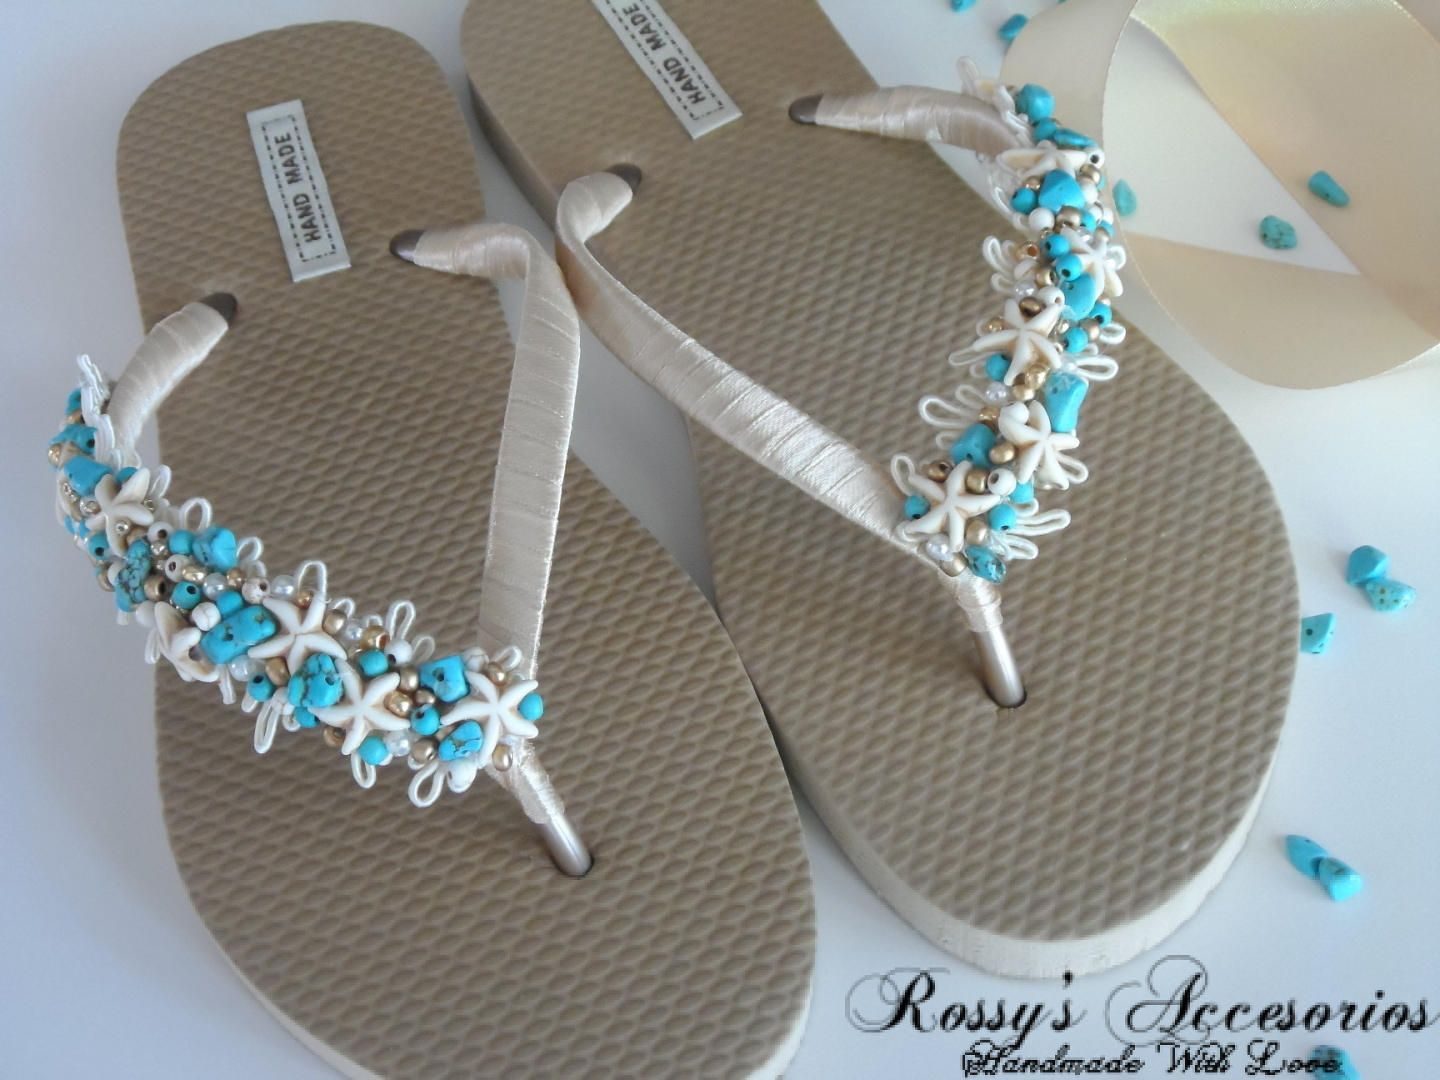 e609298ad3009f Natural Turquoise Stone Gold Flip Flops.  Beach Wedding Flip Flops   Starfish and turquoise Pearls Flip Flops   Wedding Party   Bride Gift .